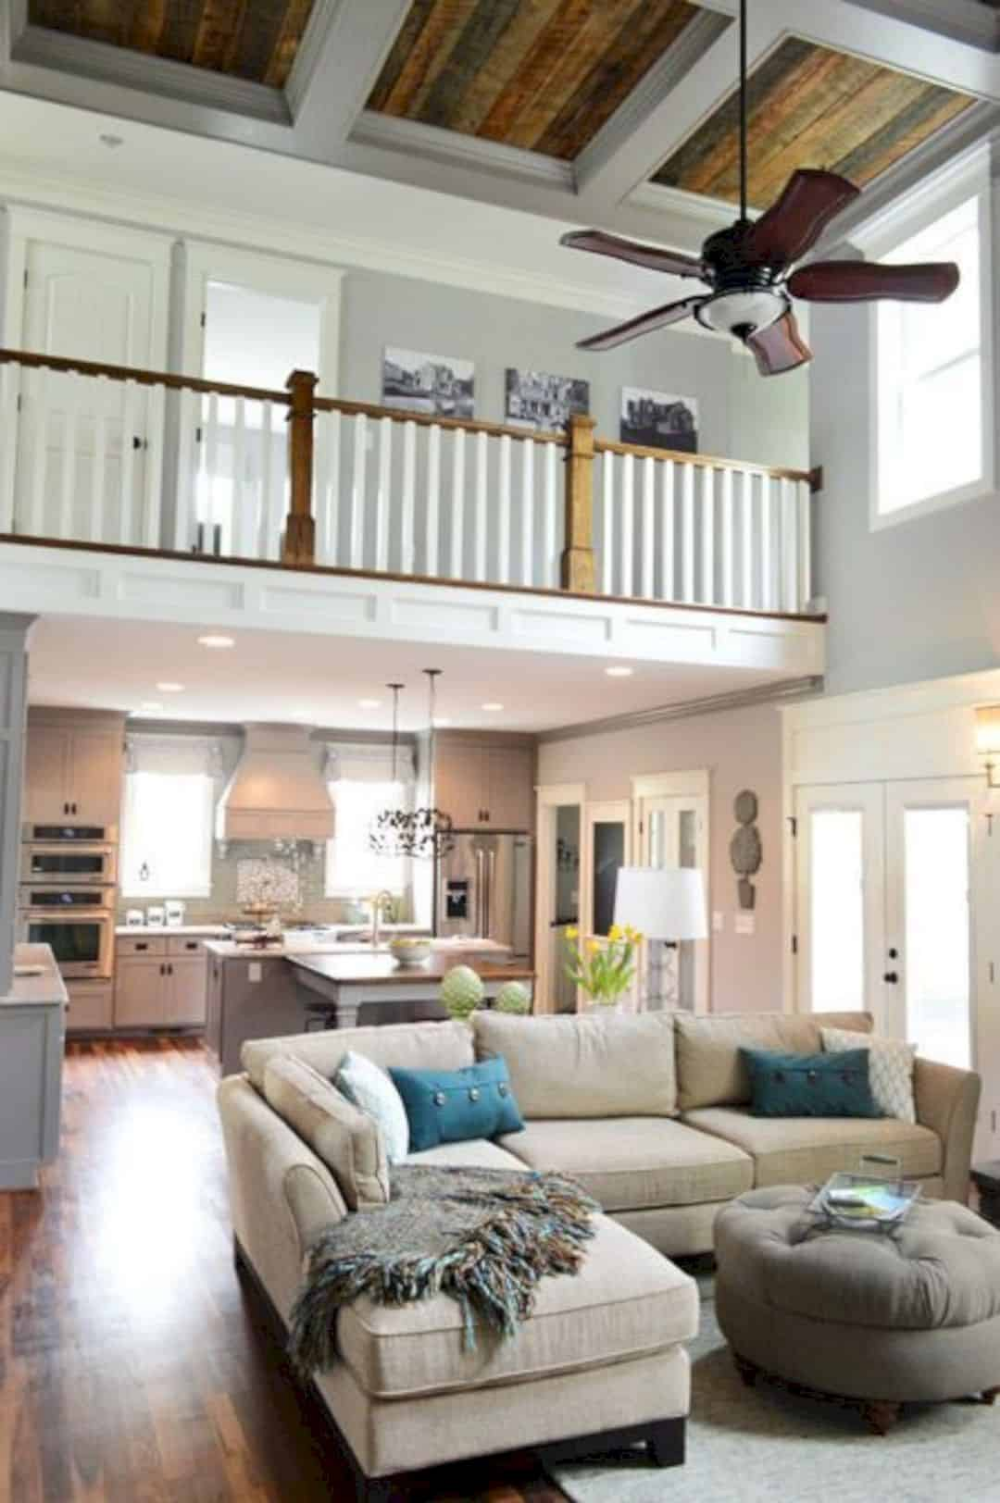 15 Amazing Furniture Layout Ideas to Arrange Your Family Room images